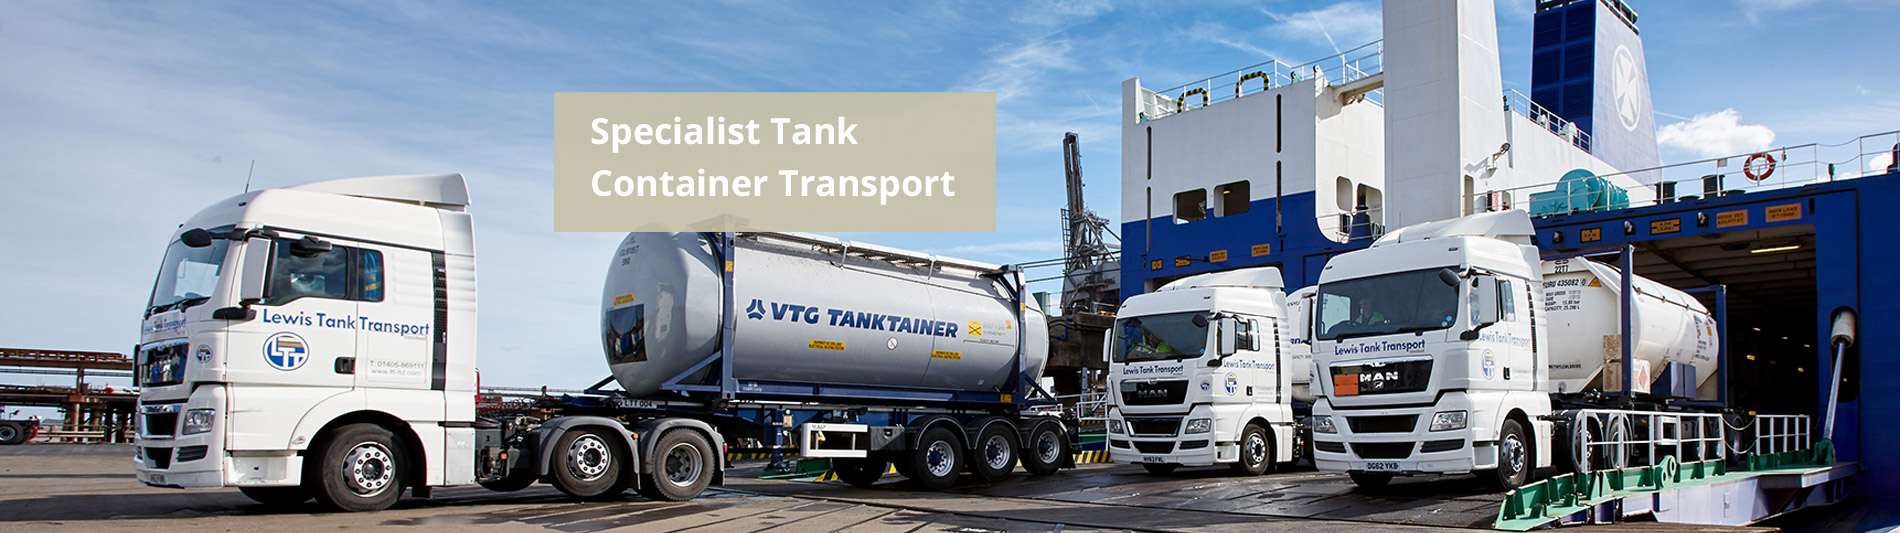 Specialist Tank Container Transport - Lewis Tank Transport